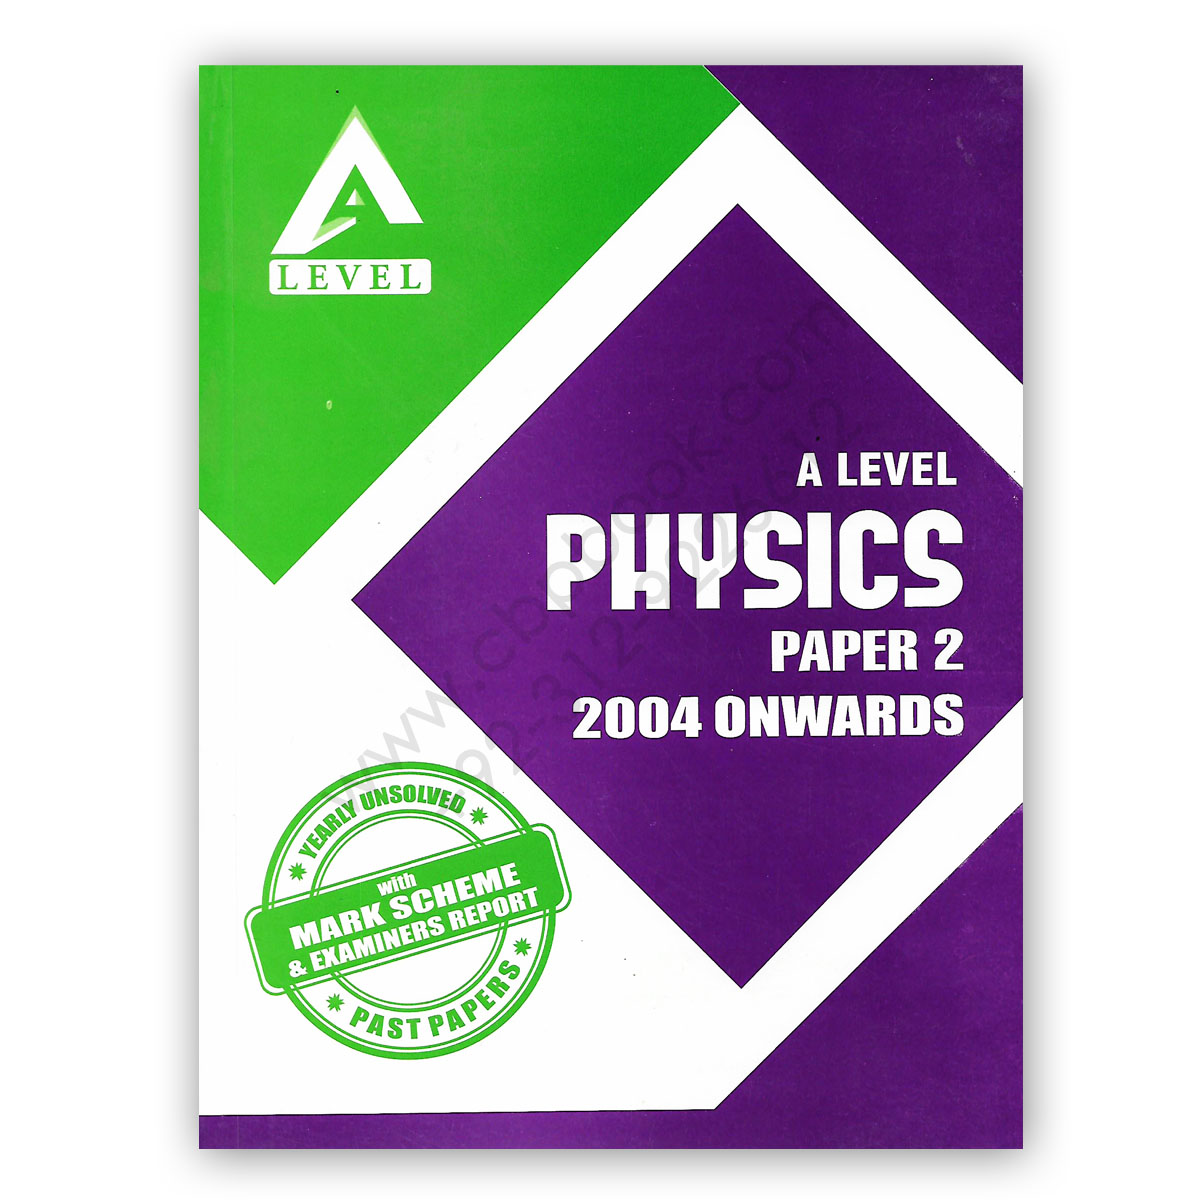 a level physics paper 2 yearly unsolved past papers from 2004 - nov 2016